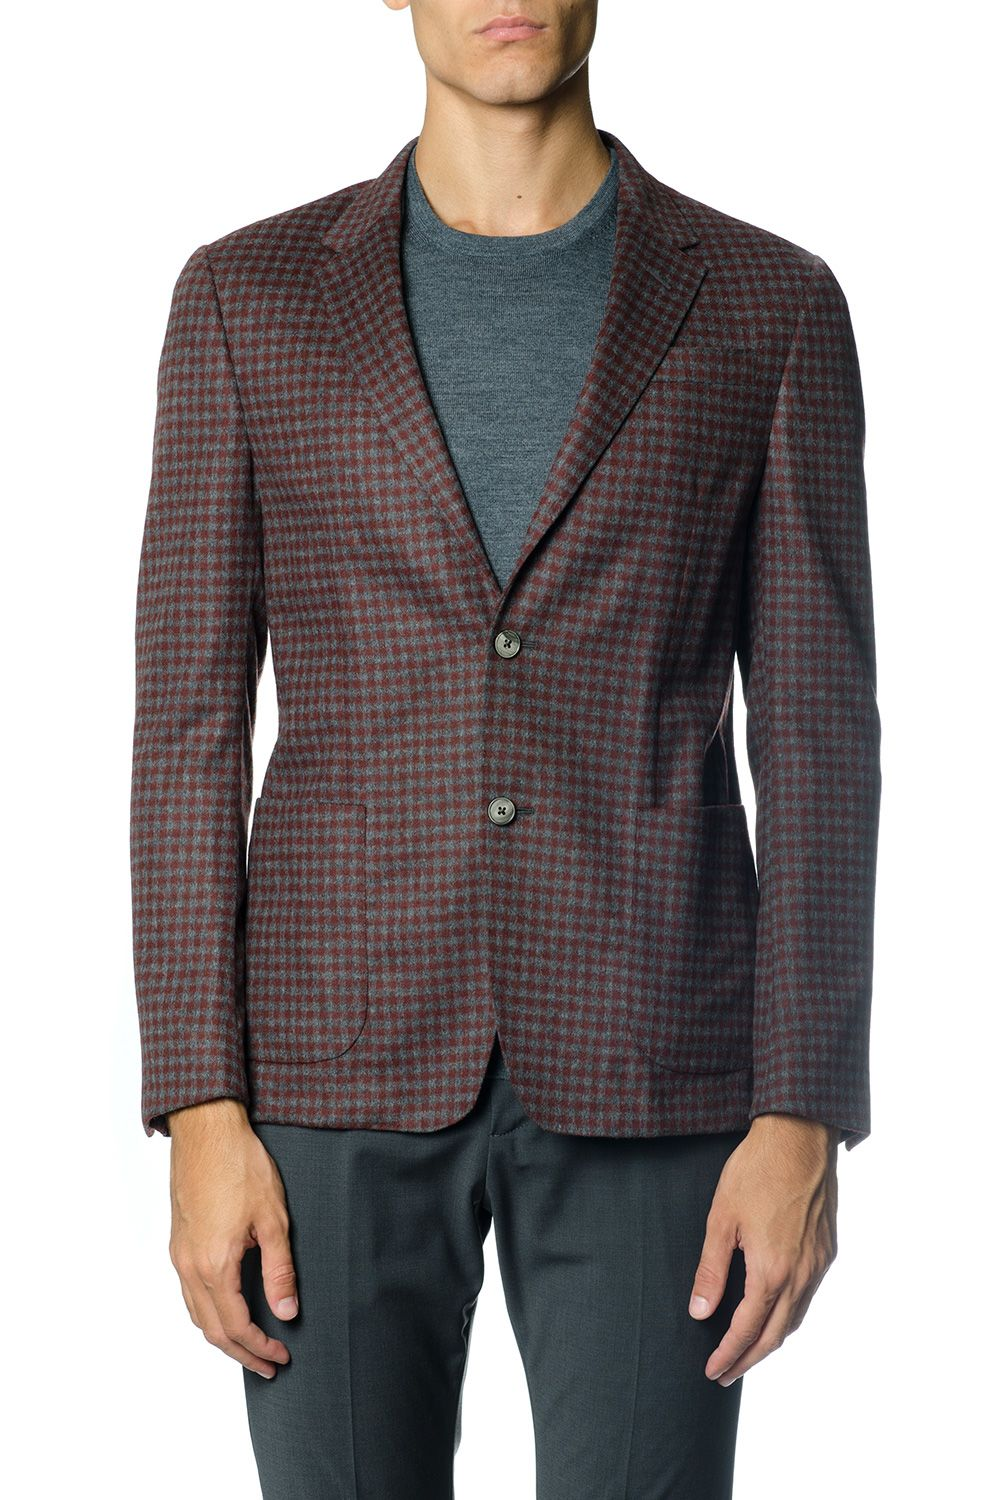 Z Zegna Single Breasted Wool Blend Jacket